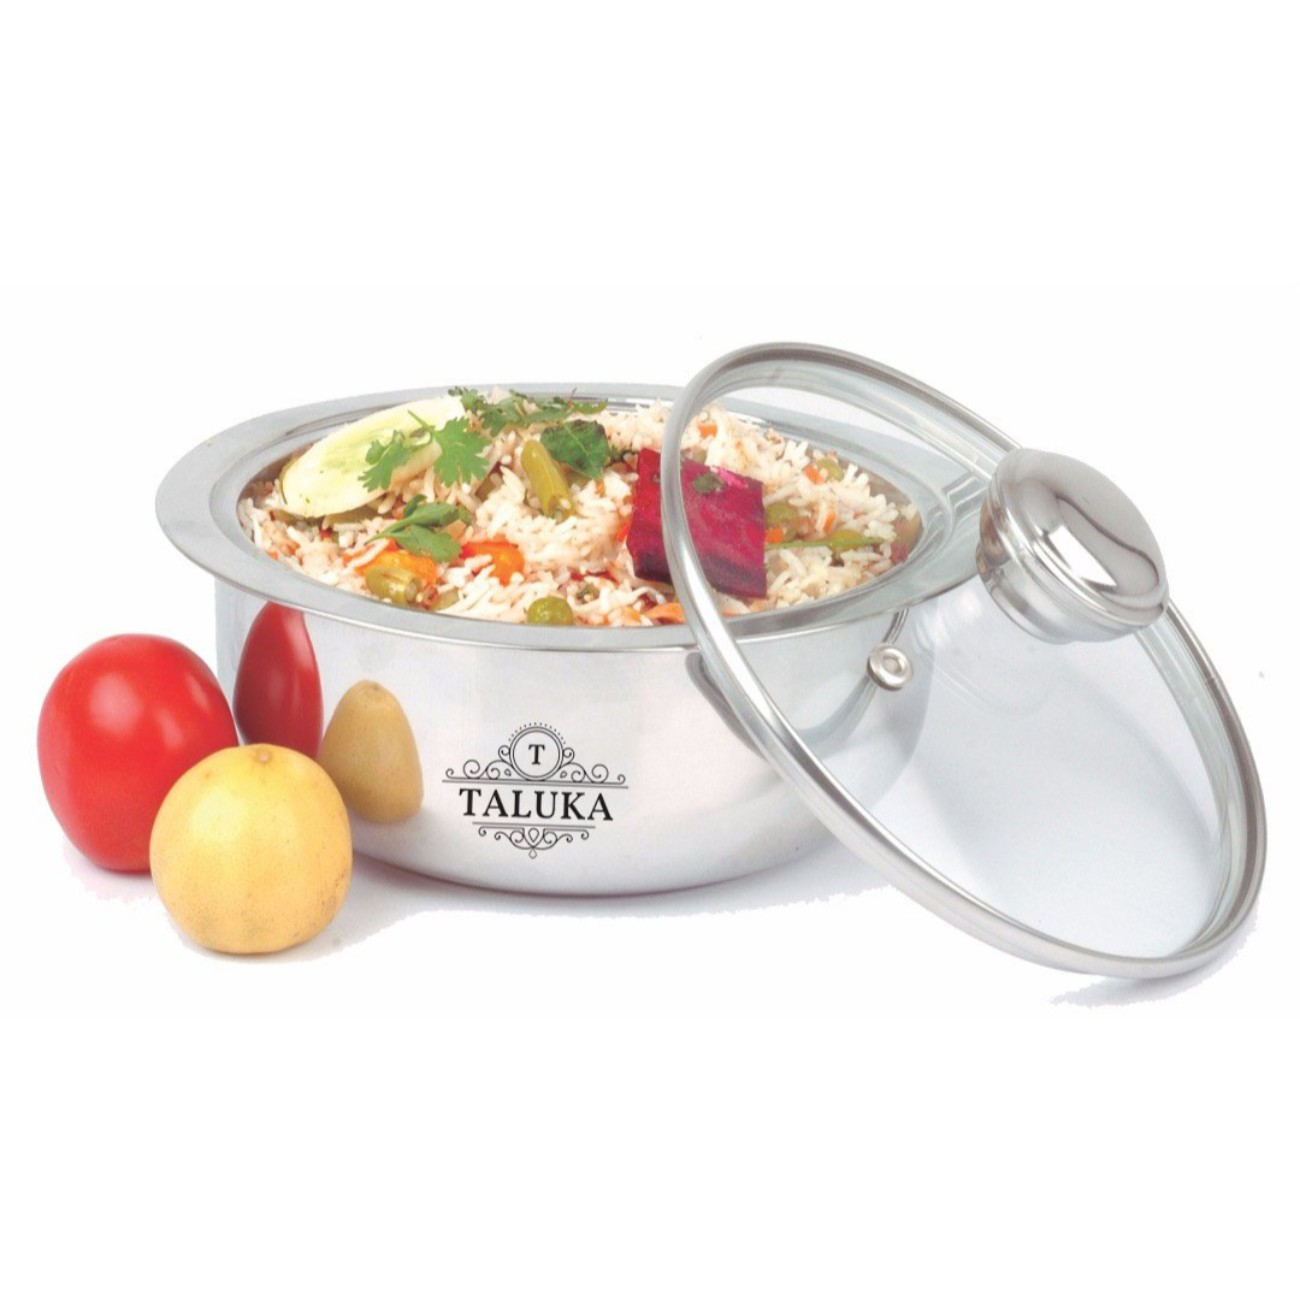 Stainless Steel Insulated Chapati Casserole Box With Glass Lid Serving Casserole